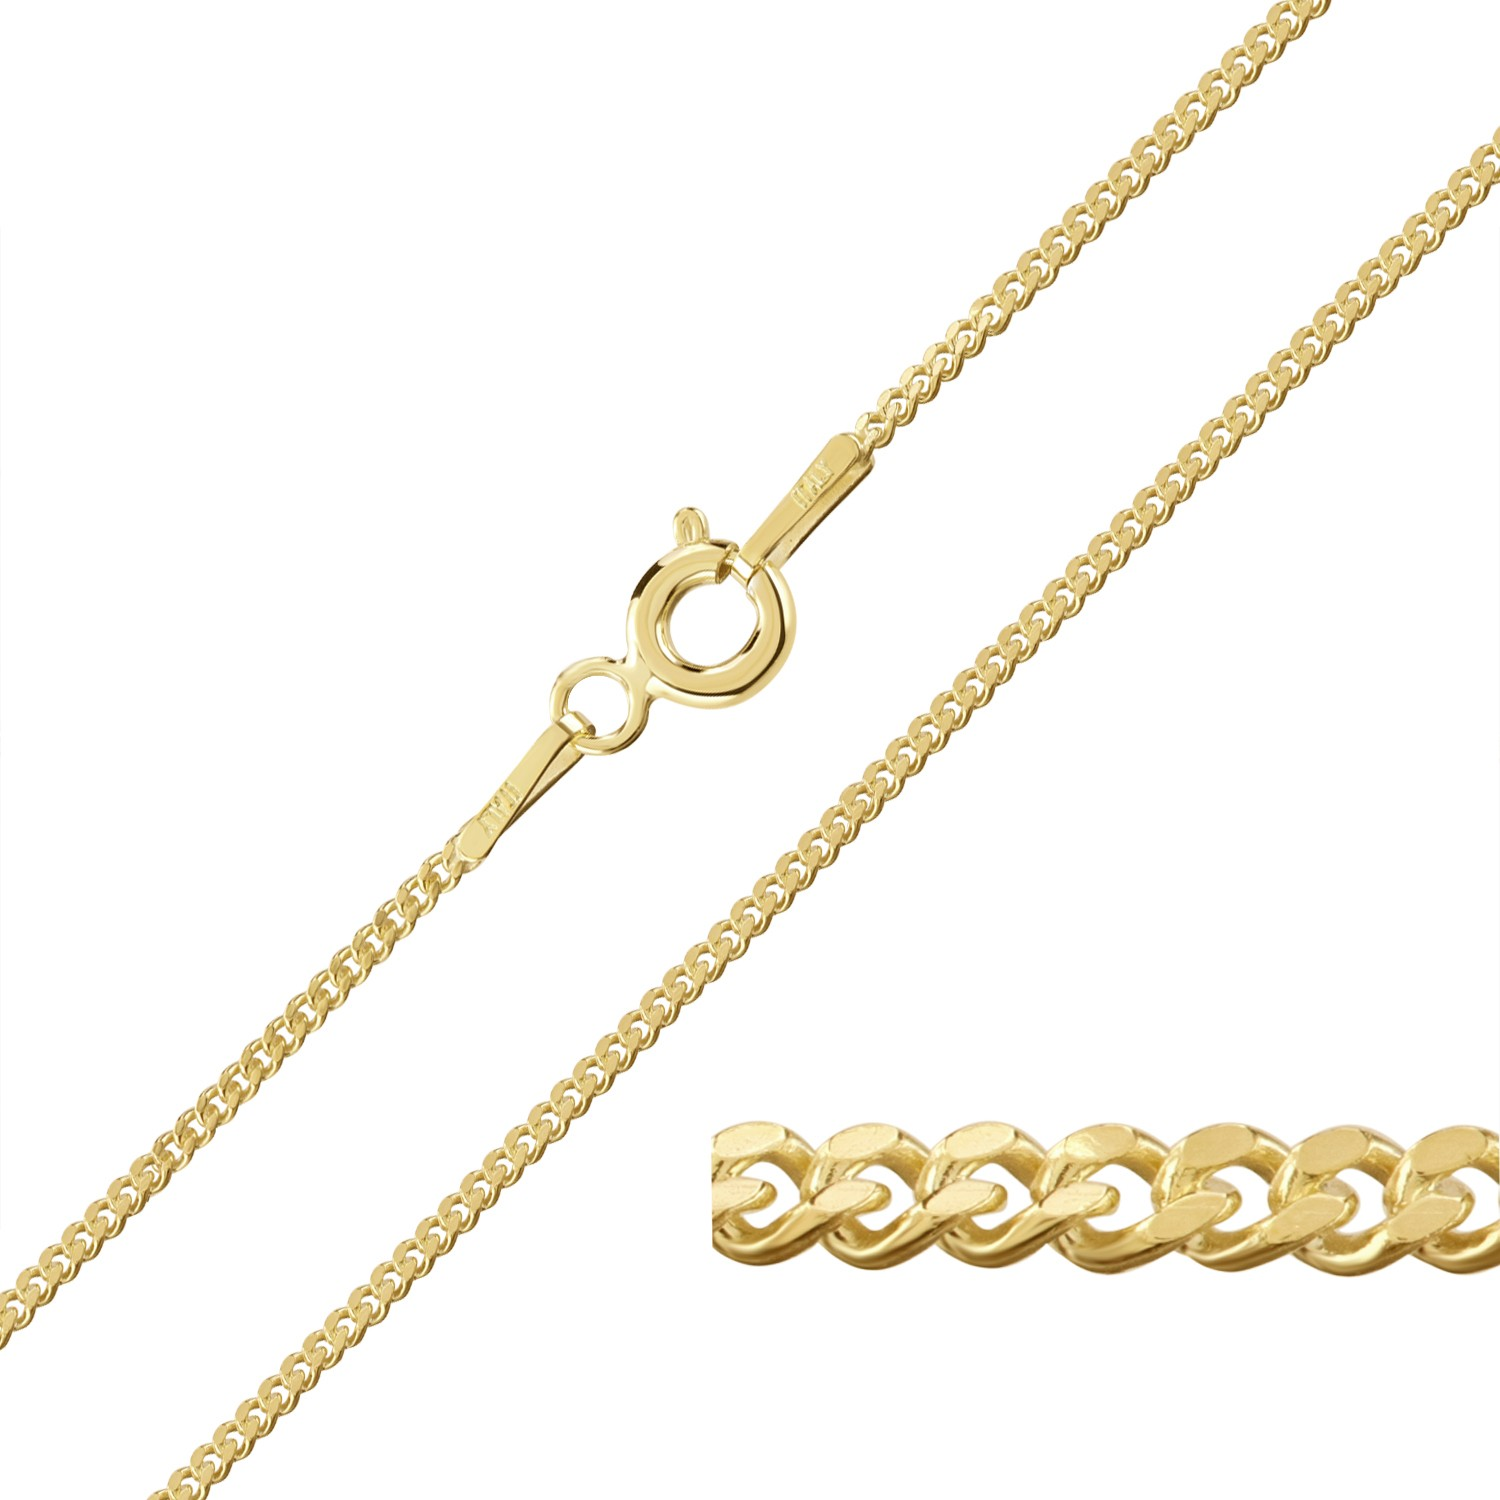 9ct Yellow Gold Plated On Sterling Silver 1 2mm Curb Chain